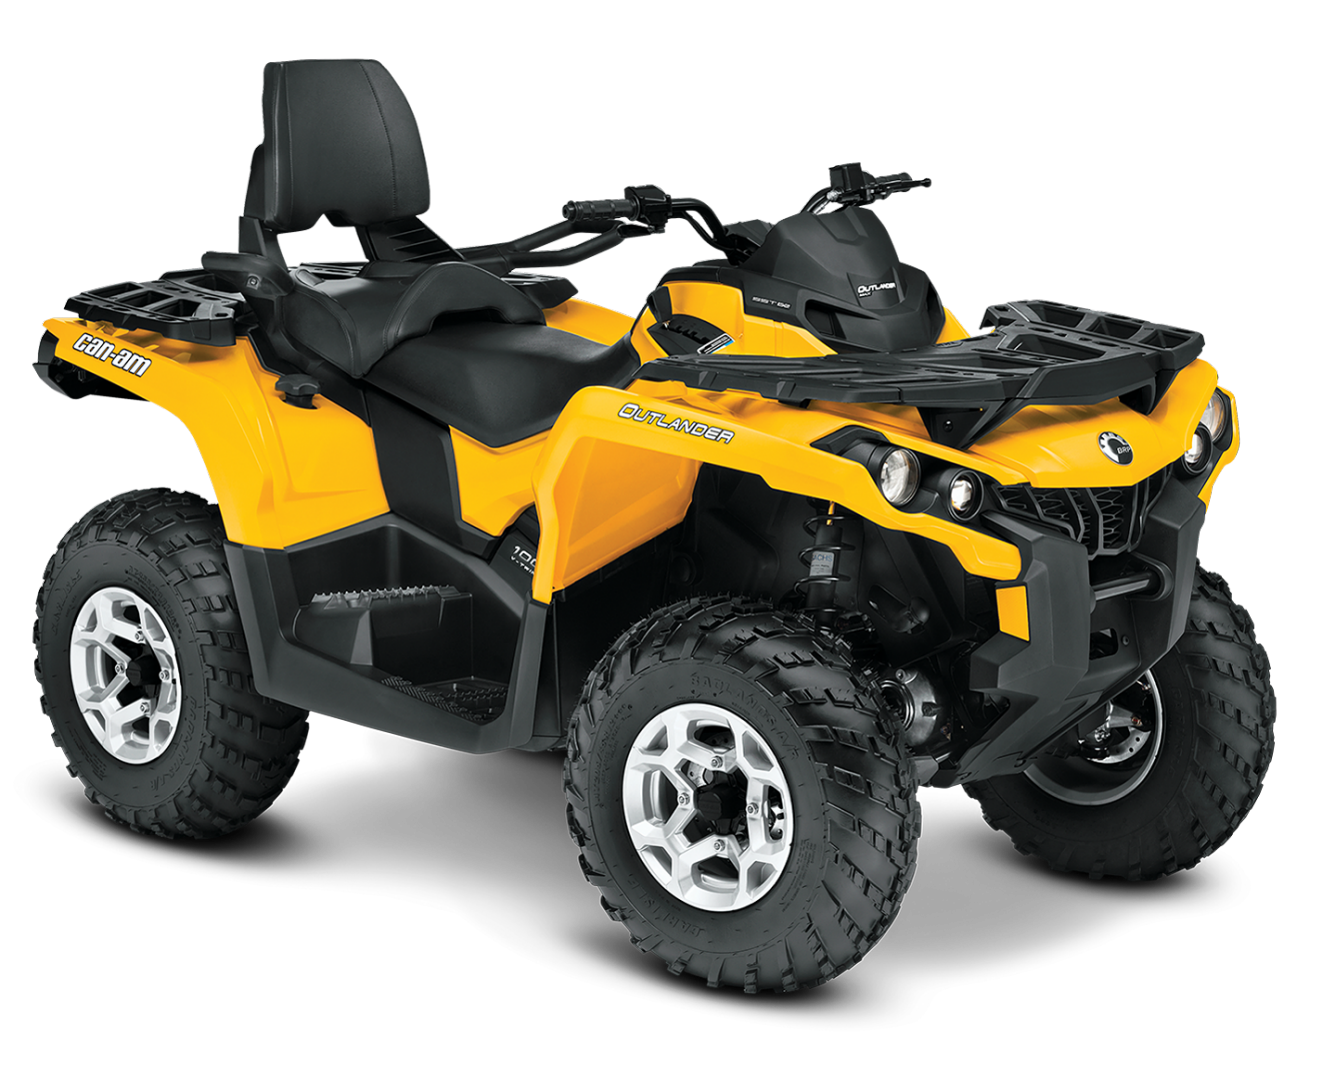 New 2015 can am outlander max dps 500 atvs for sale in south carolina 2015 can am outlander max dps this package gives you the flexibility to customize